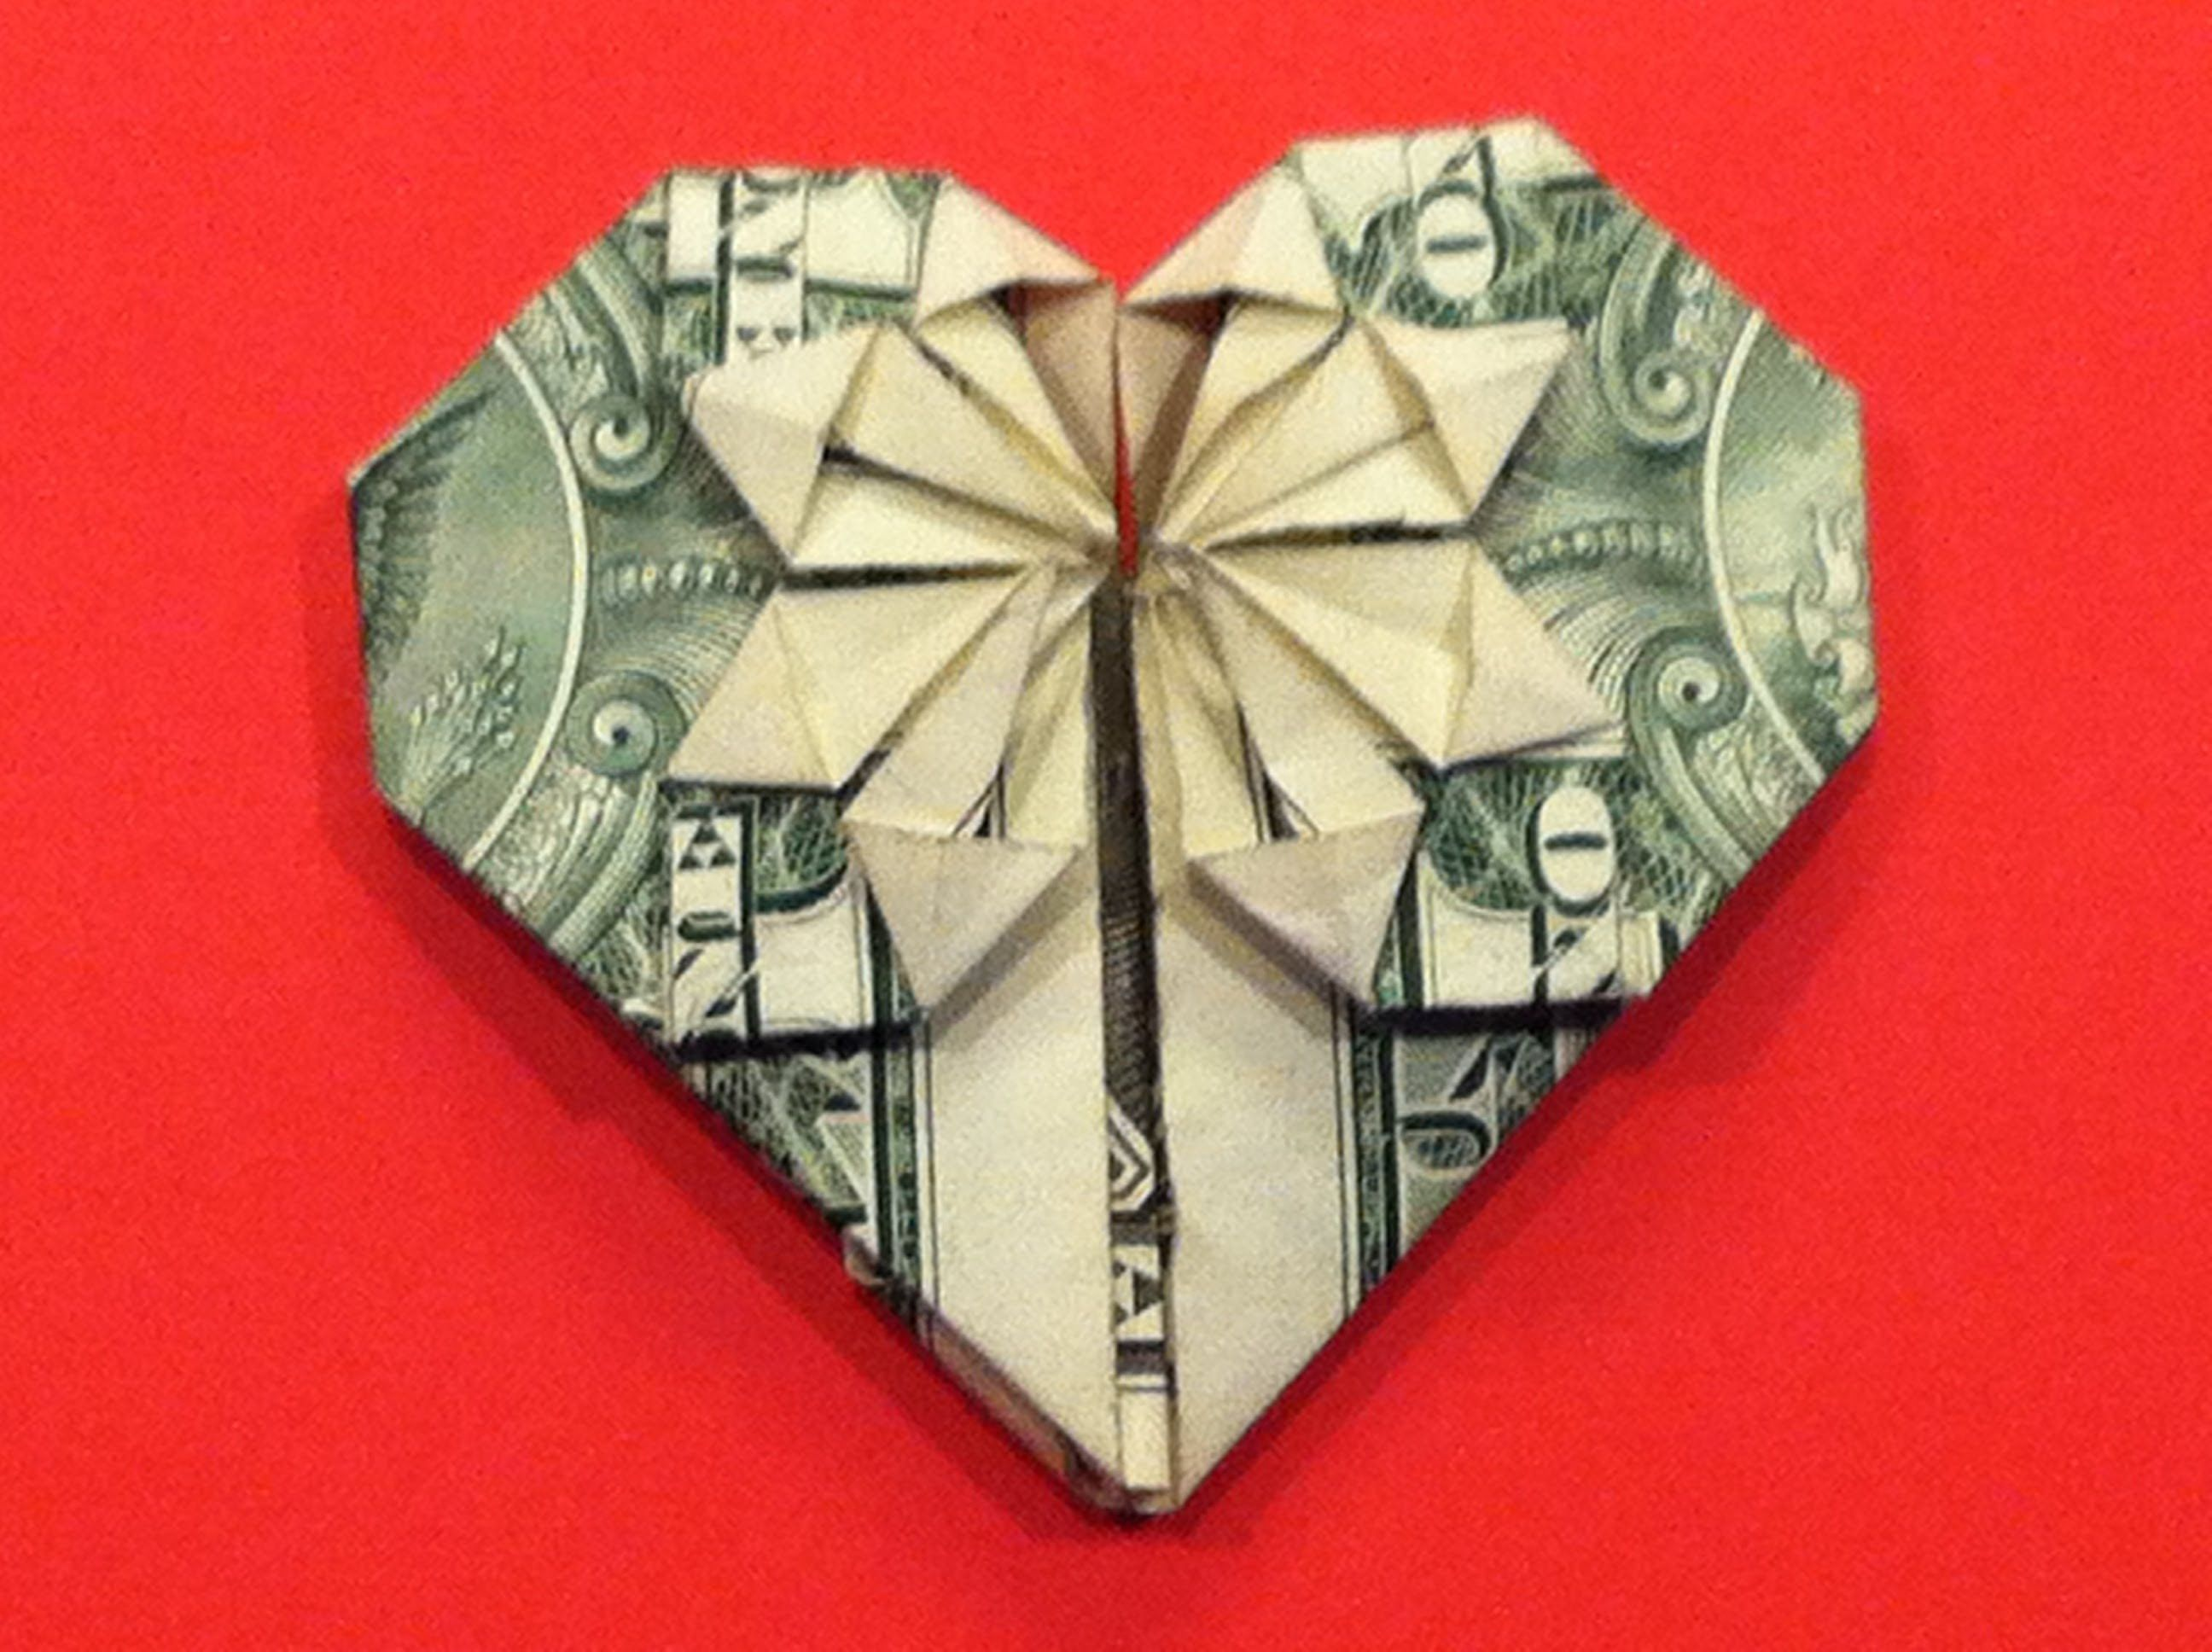 In This Video I Will Show You How To Fold A Heart With A Star Using One Us Dollar Bill This And More At Www J Dollar Bill Origami Dollar Origami Money